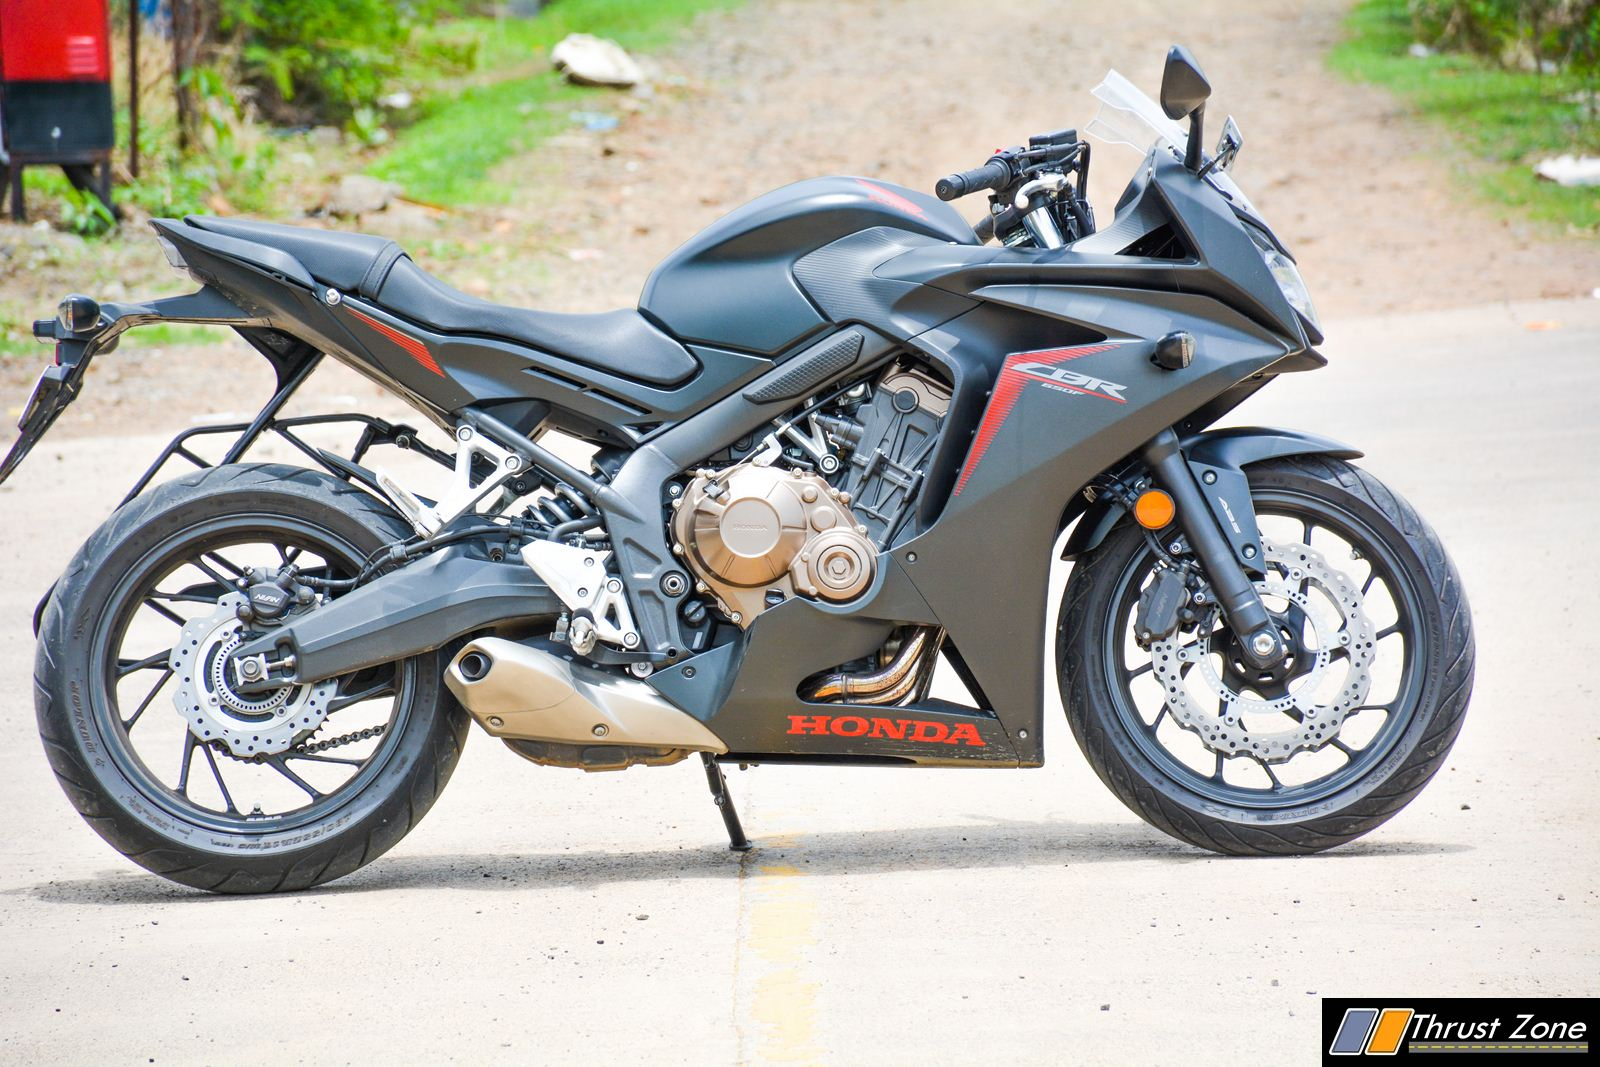 2018-Honda-CBR650F-India-Review-12